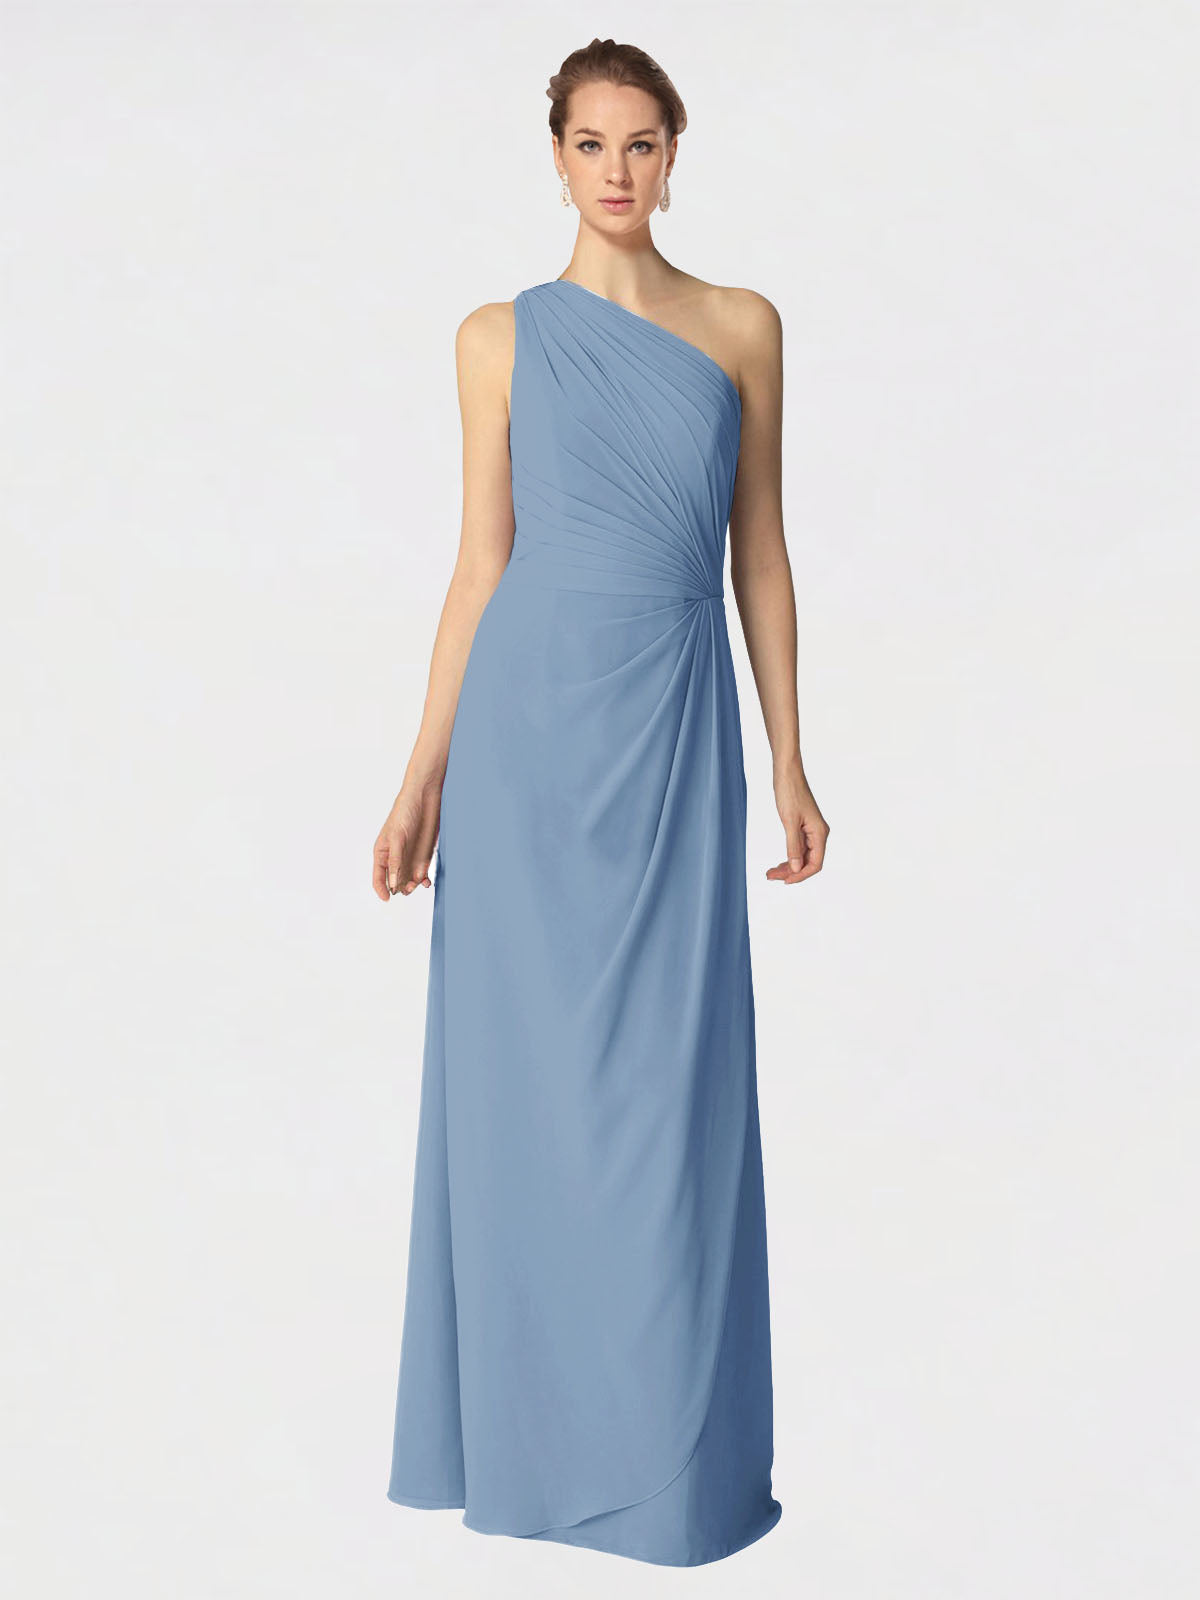 Long A-Line One Shoulder Sleeveless Dusty Blue Chiffon Bridesmaid Dress Aurora